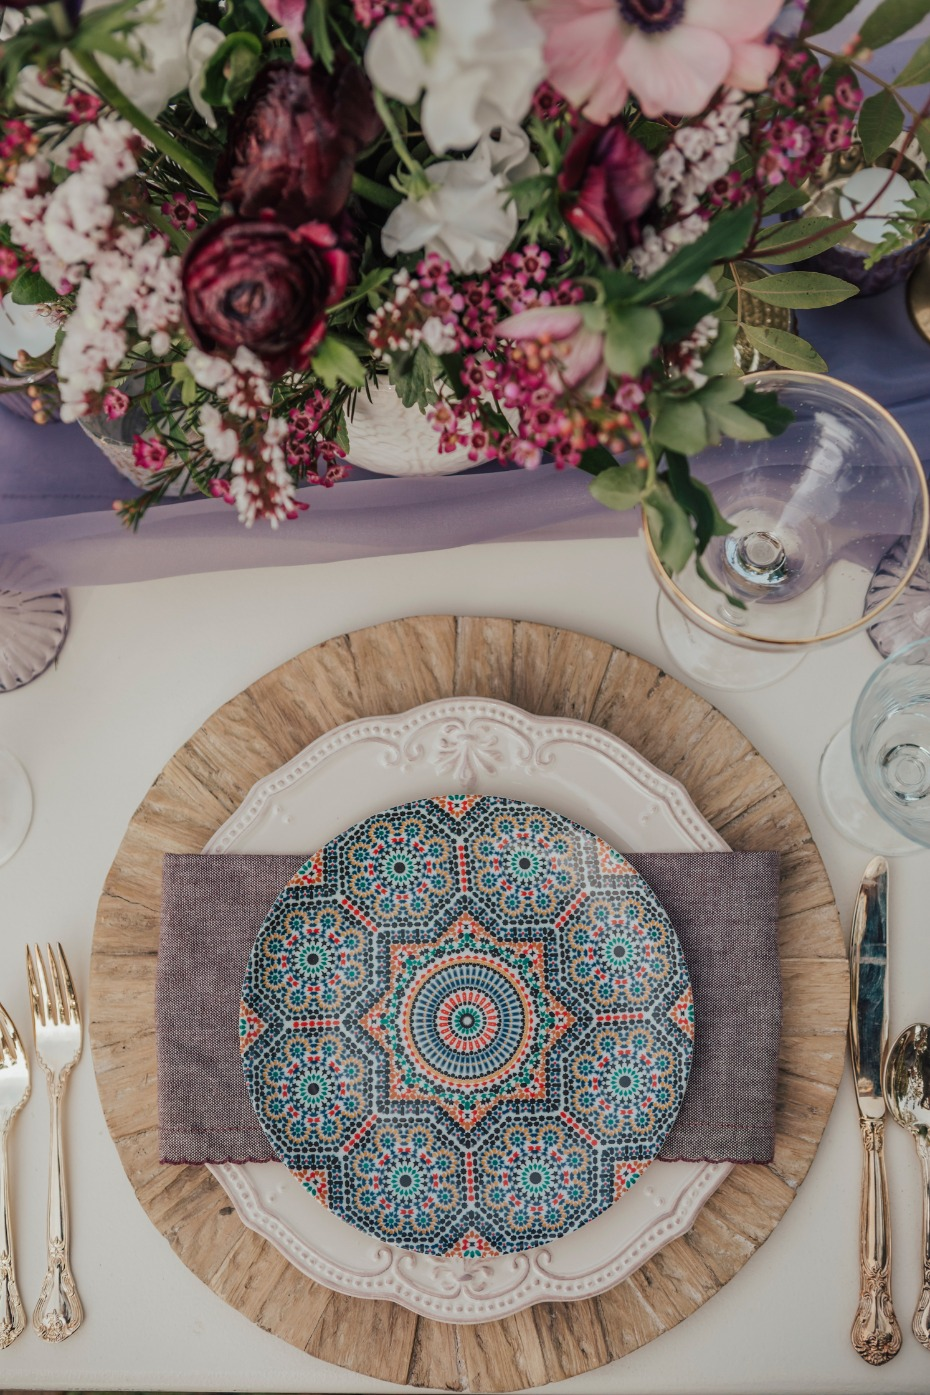 Color and texture place setting